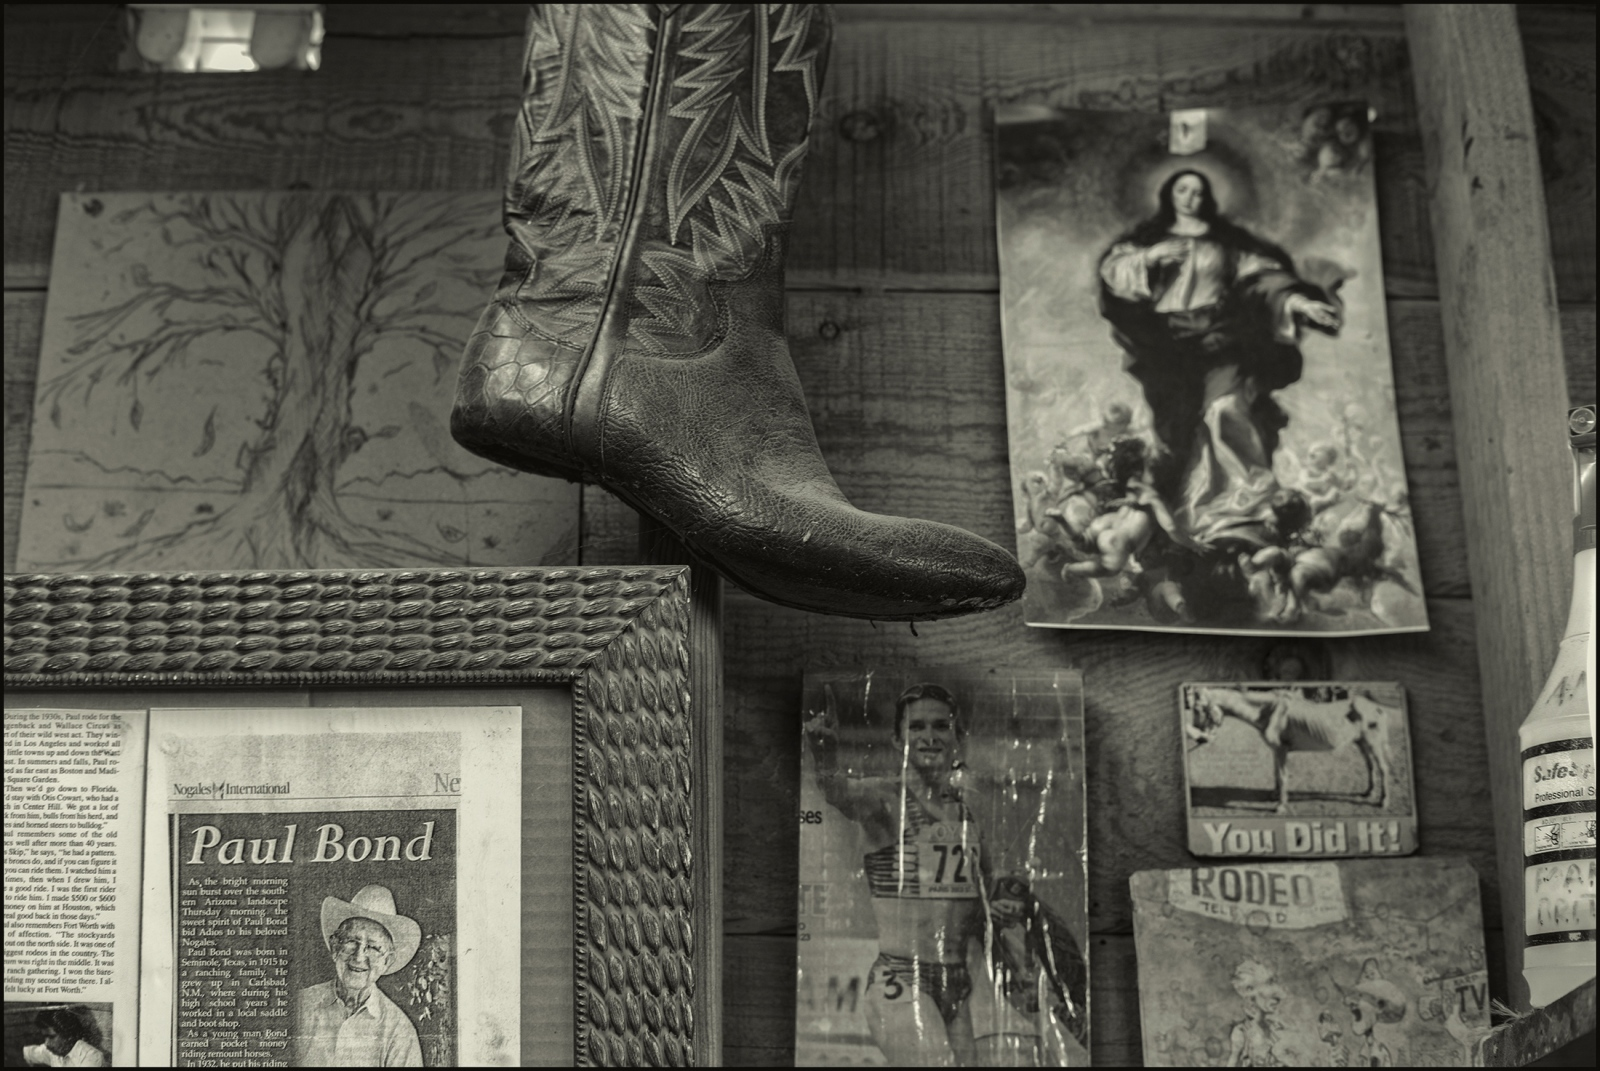 Detail, wall at workstation of Marcial Gonzales Parra . Paul Bond Boot Company, Nogales, Arizona. February 2019.